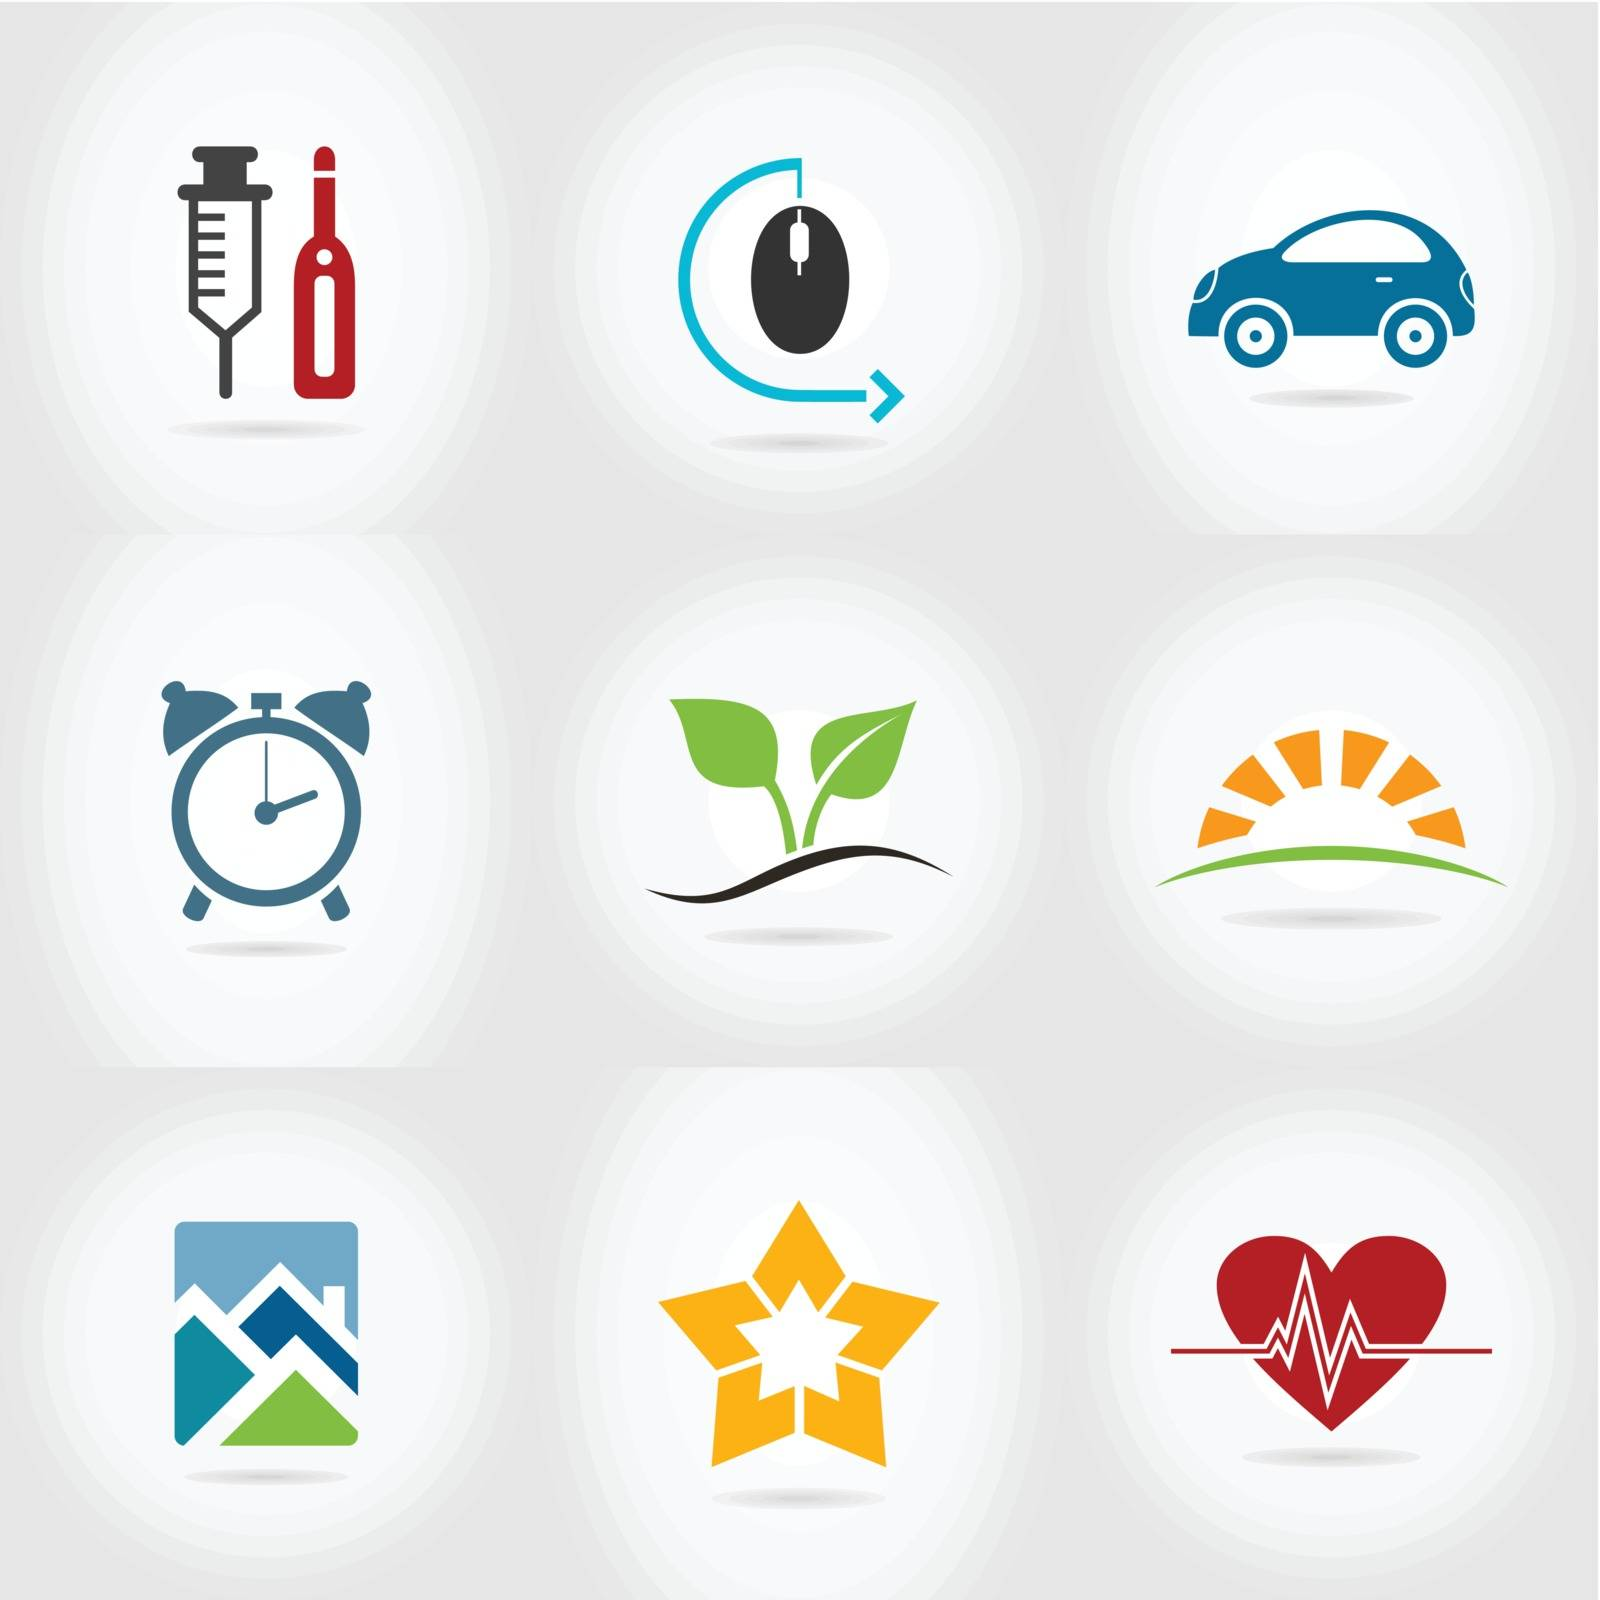 Set of icons for web design. A vector illustration